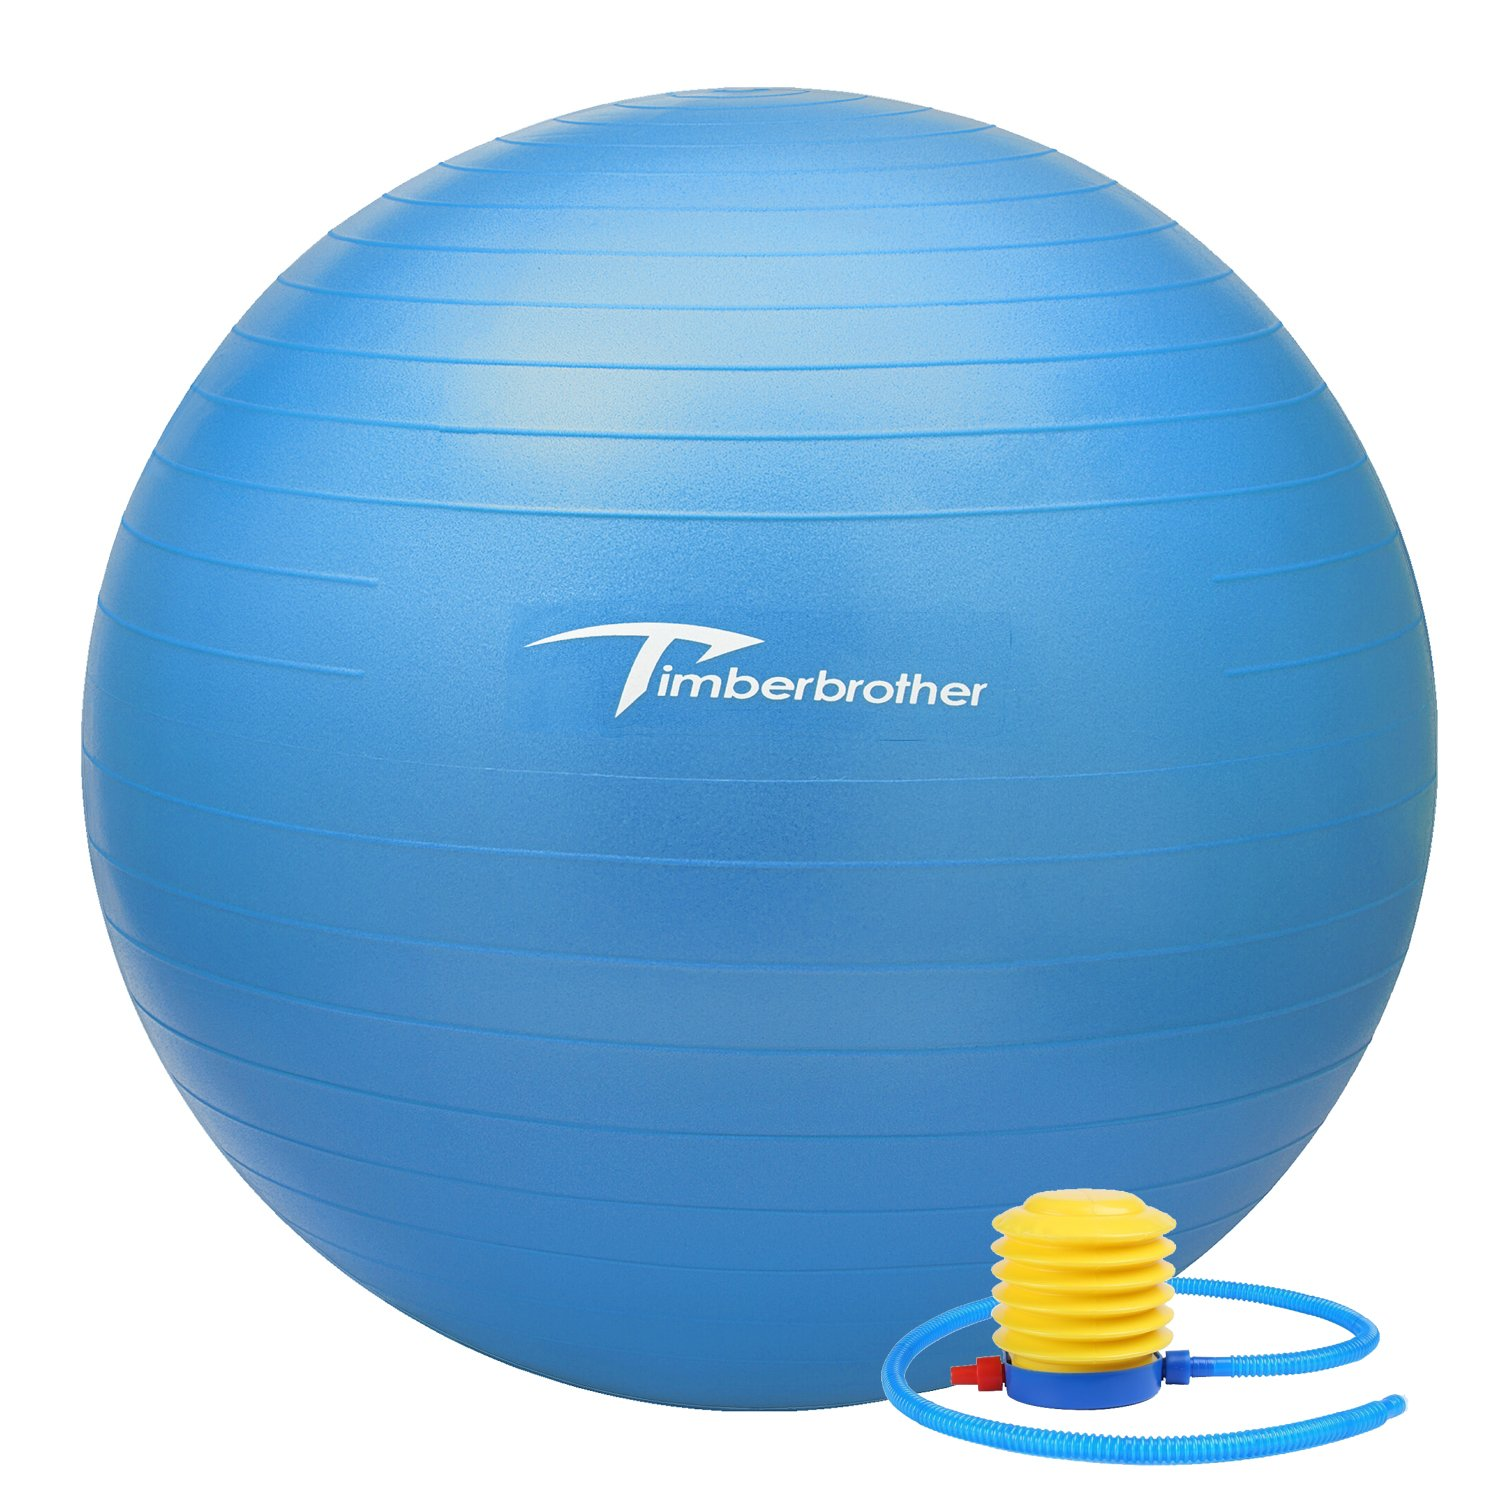 Timberbrother Anti-Burst Exercise Stability Ball / Fitness Ball / Balance Ball with Foot Pump - 55cm / 65cm / 75cm (Blue, 75cm)